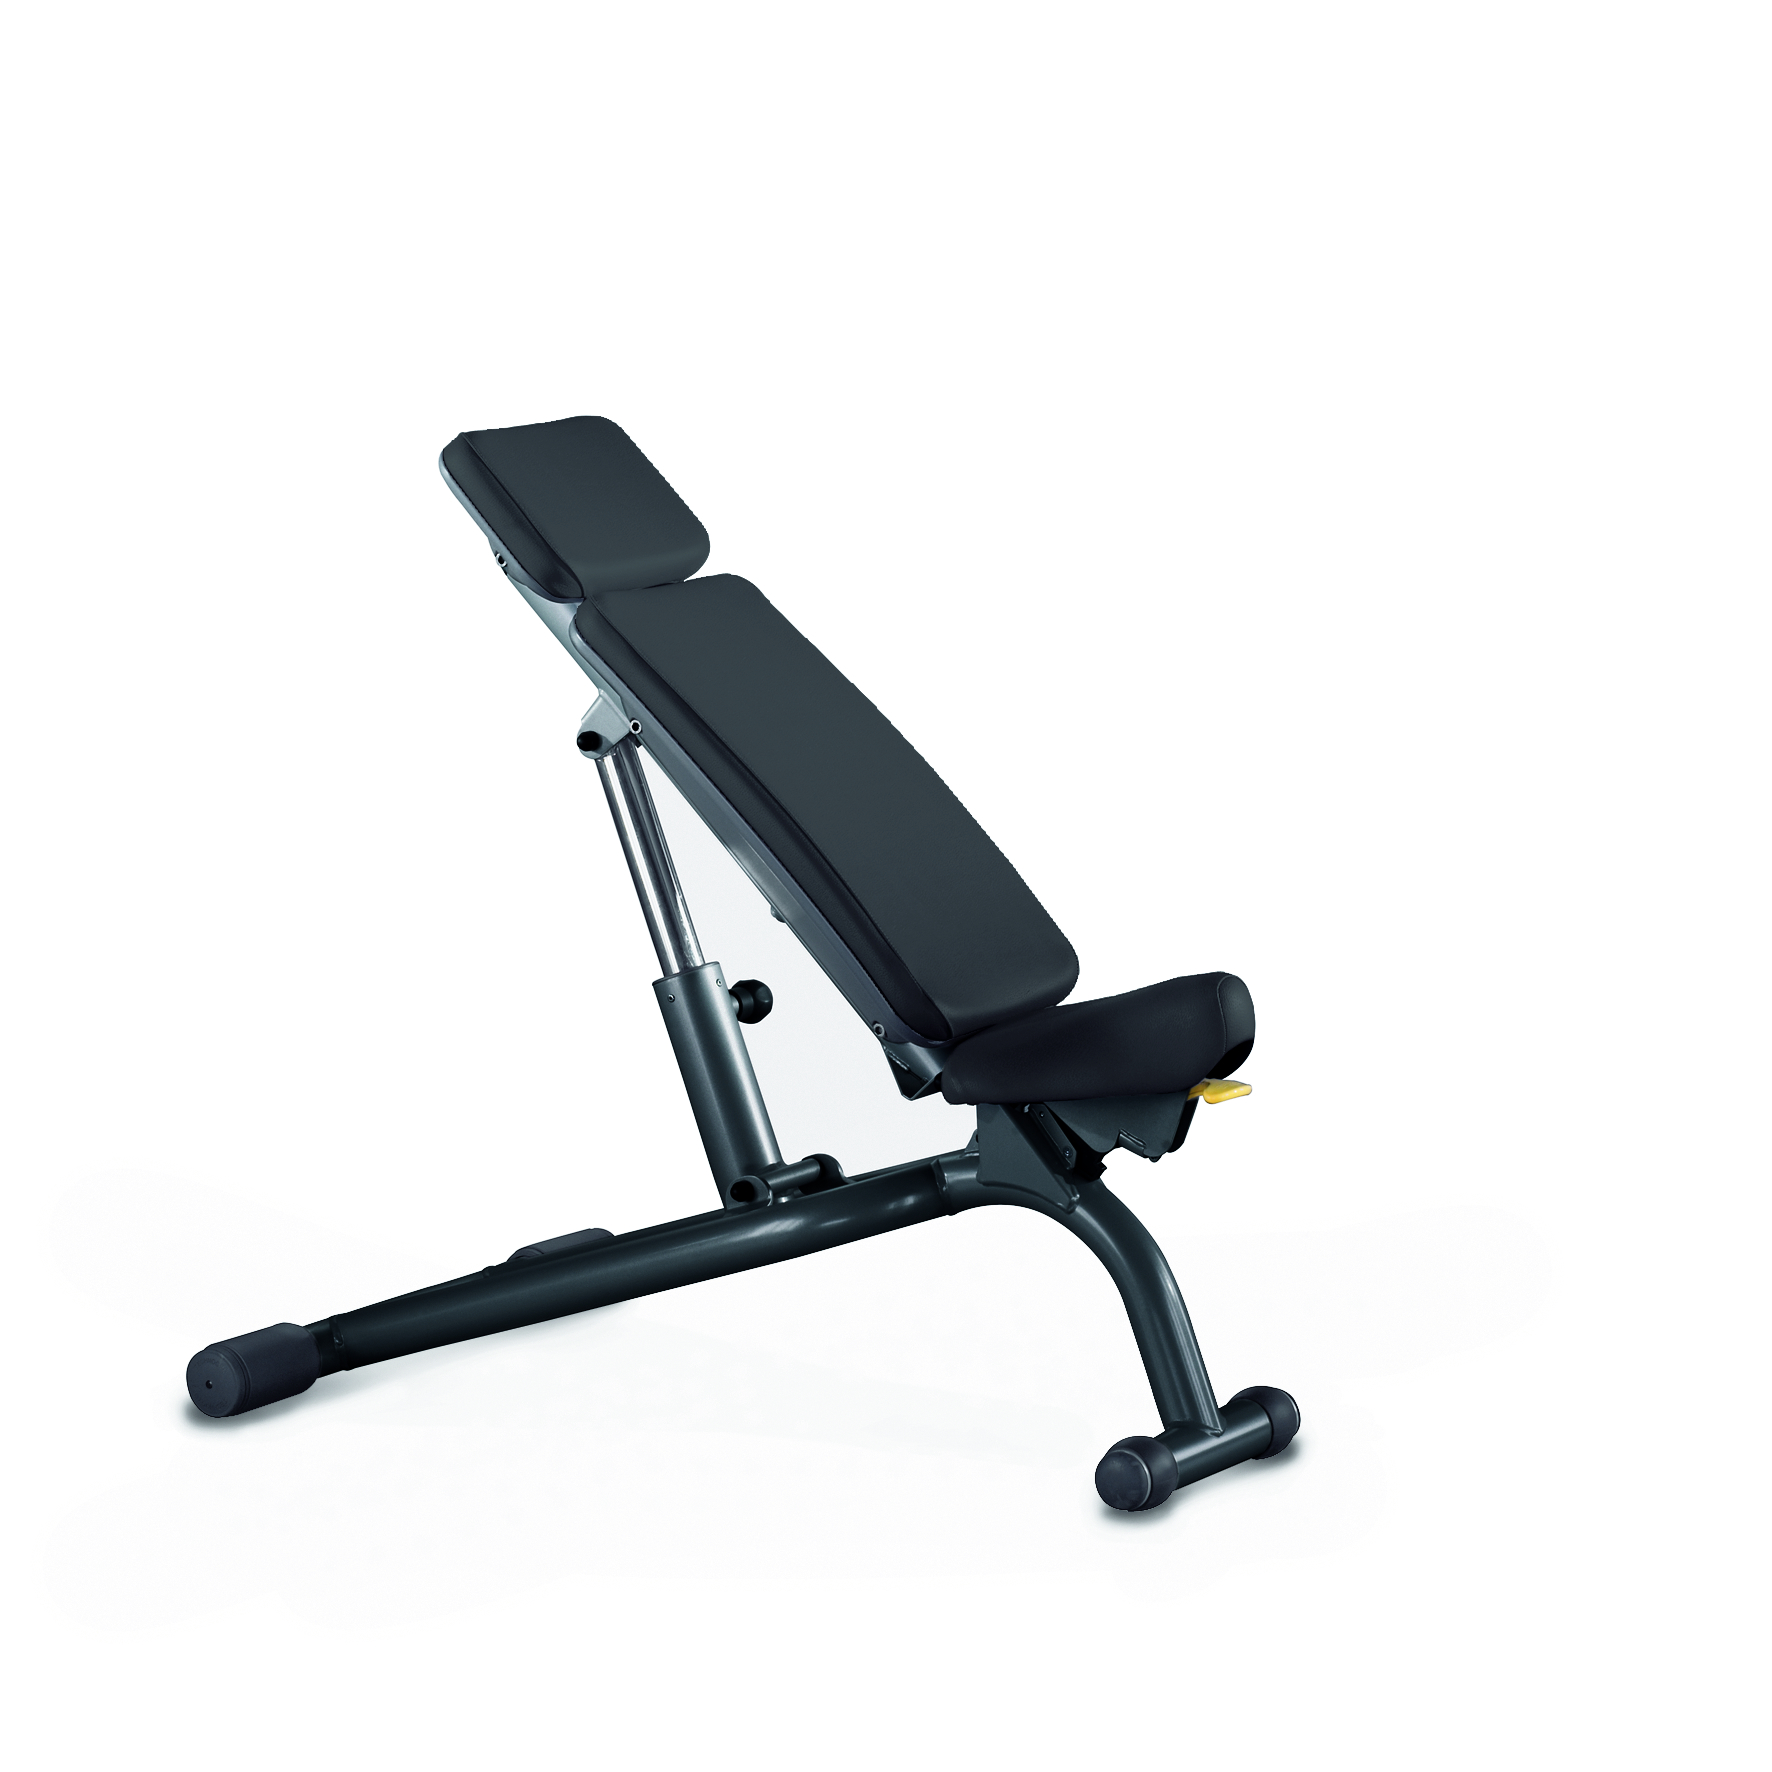 Fitness Benches – Adjustable Bench